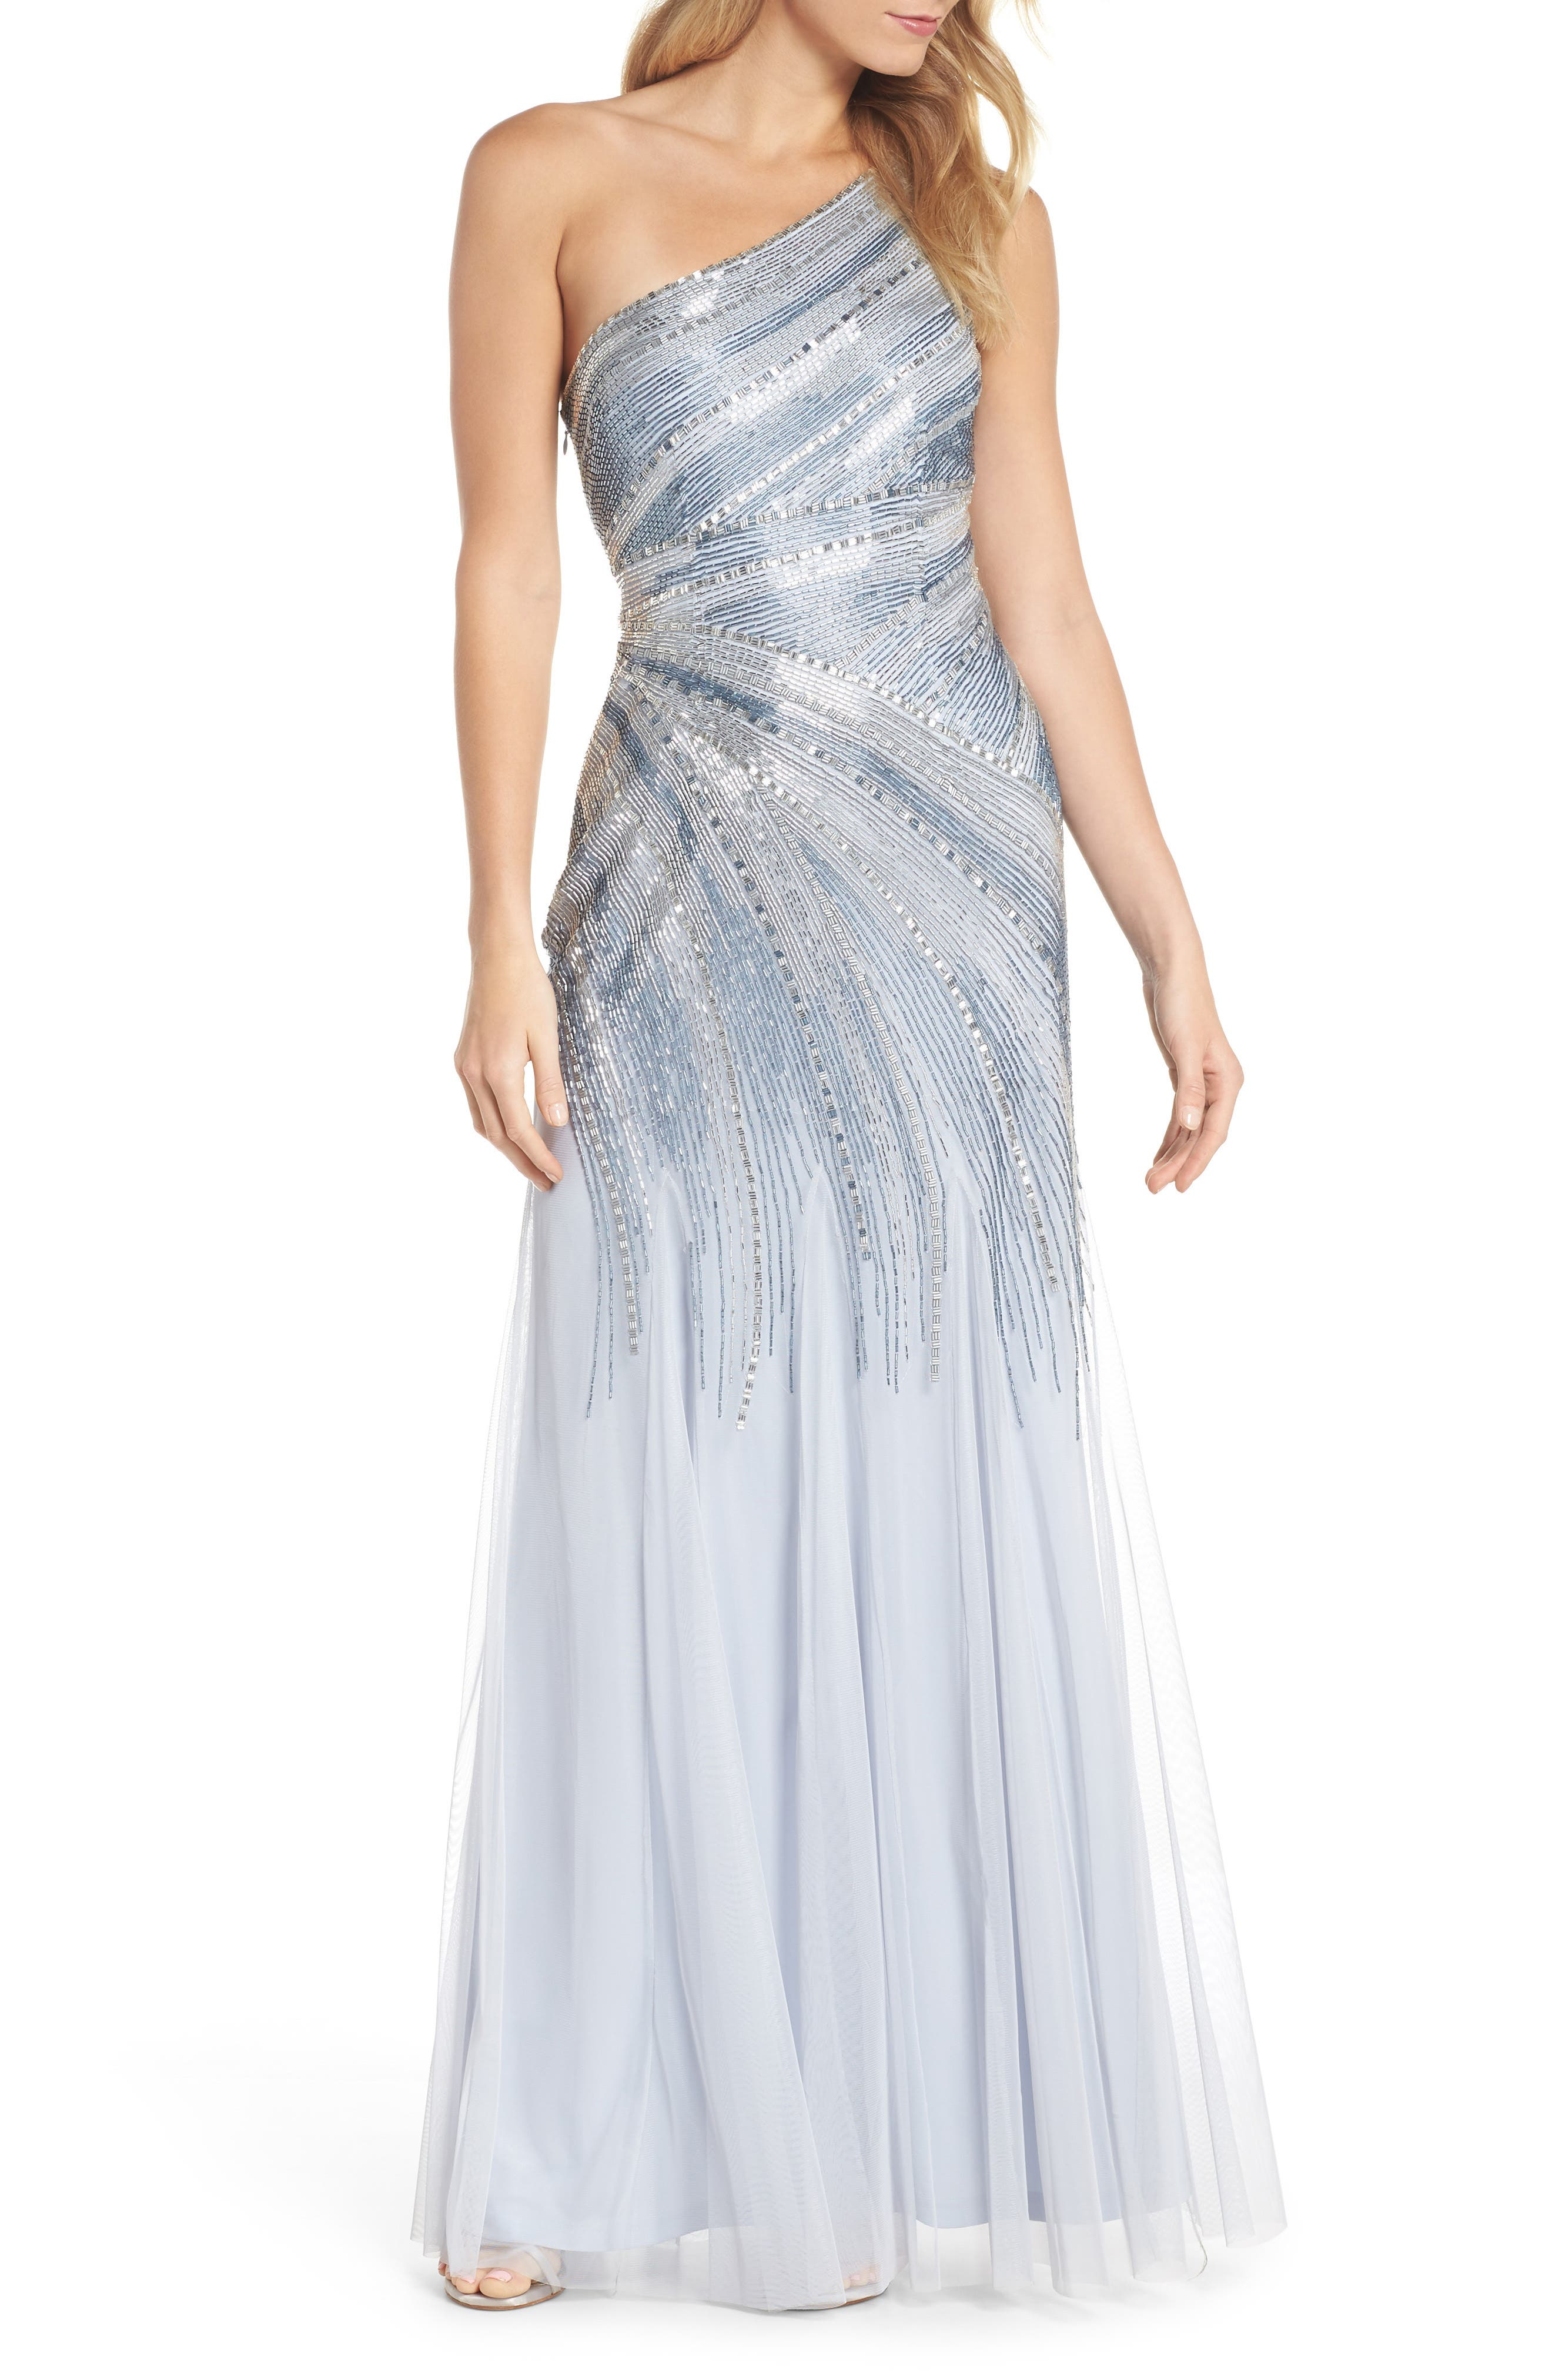 Beaded One-Shoulder Mermaid Gown,                             Main thumbnail 1, color,                             450